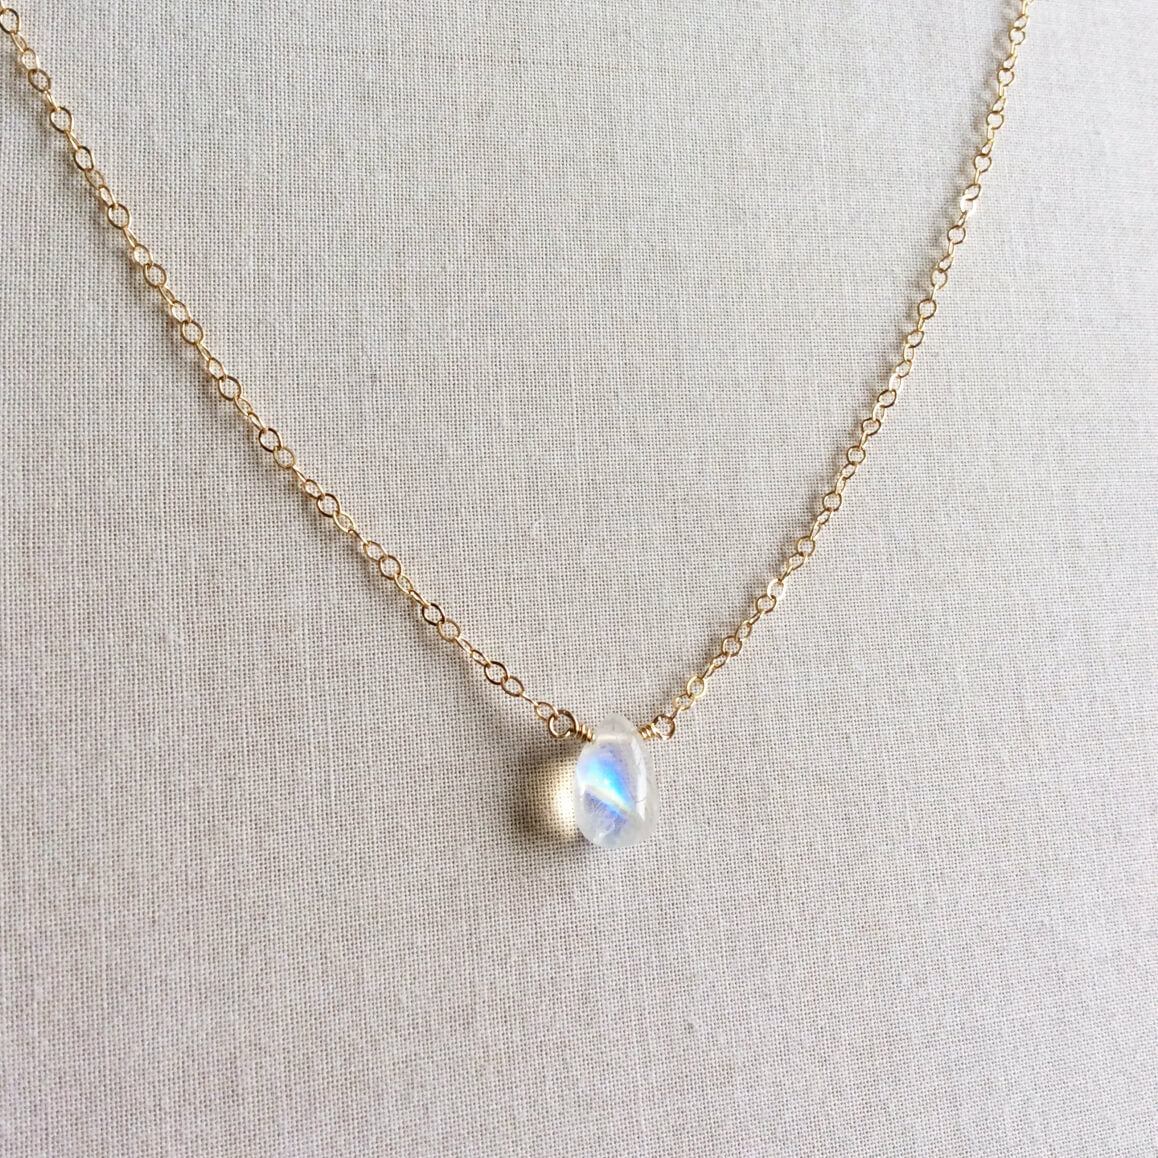 dainty moonstone necklace in 14k gold chain